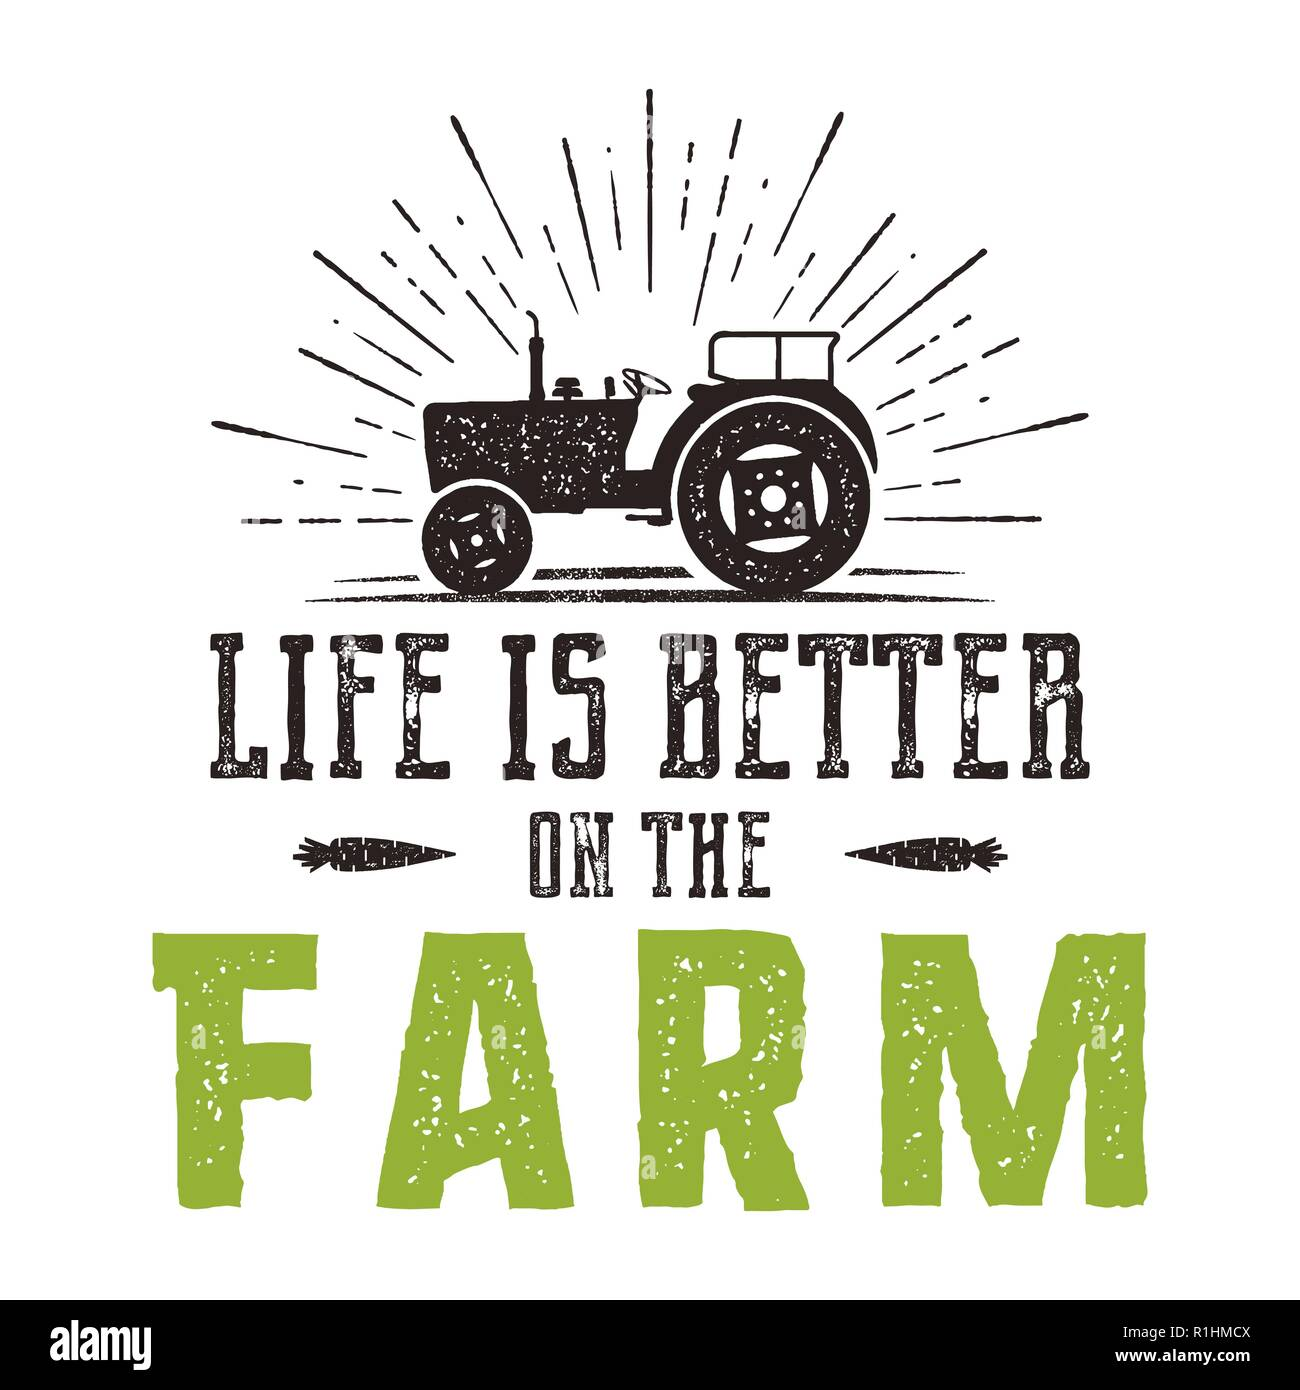 Life is better on the Farm emblem. Vintage hand drawn farming logo. Natural products poster. Retro distressed style. Stock vector farmers illustration isolated on white background - Stock Vector